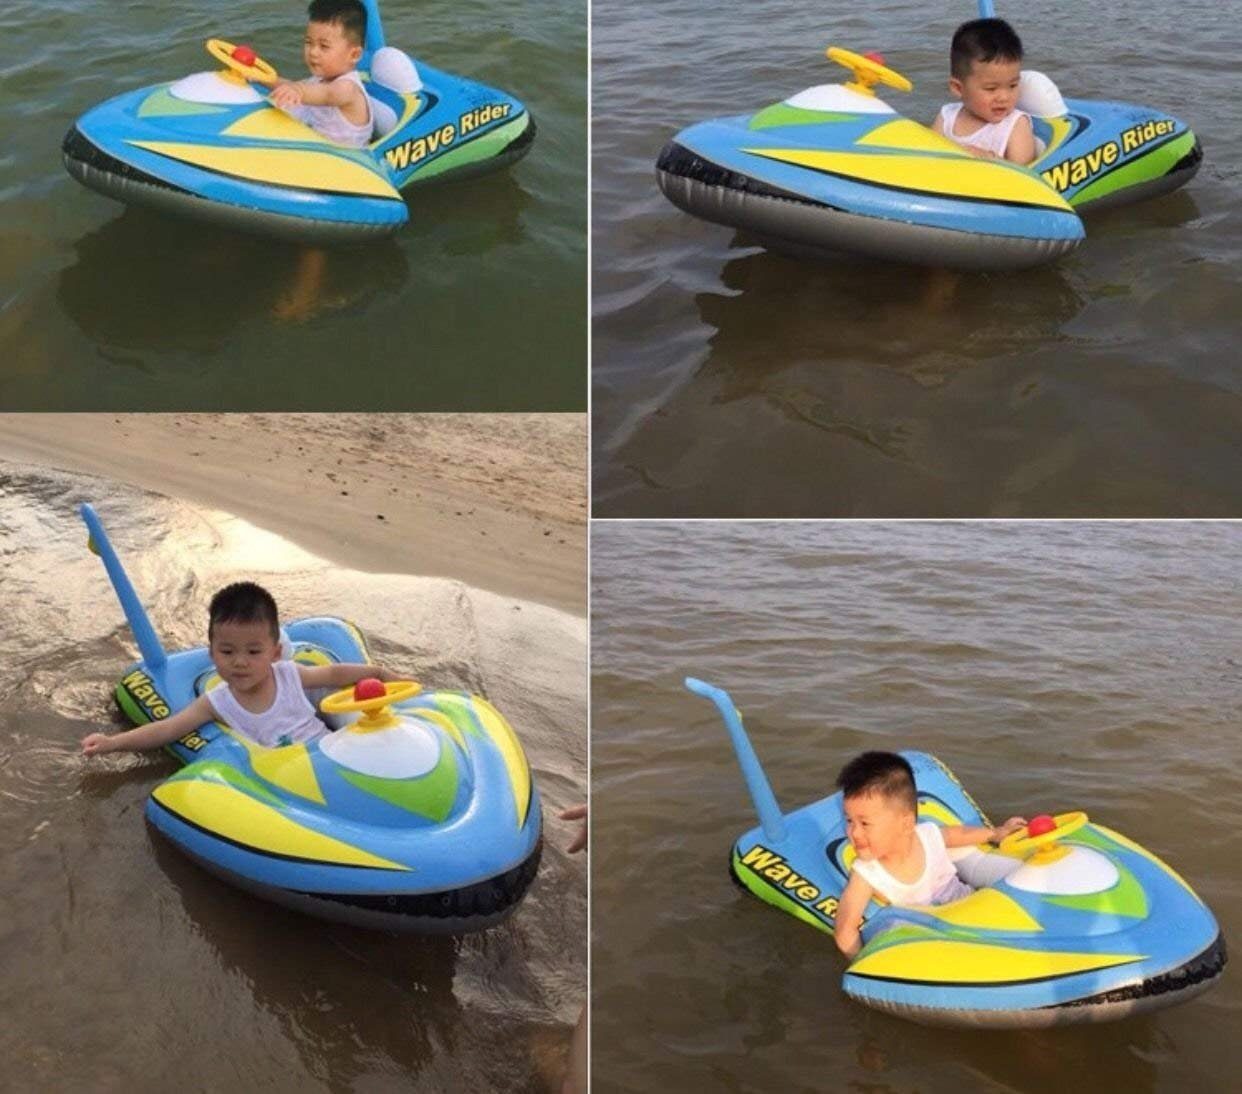 qicaibei Inflatable Airplan Motoboat Baby Kids tolddler swimming float seat raft tube ring pool toy Mvproducts